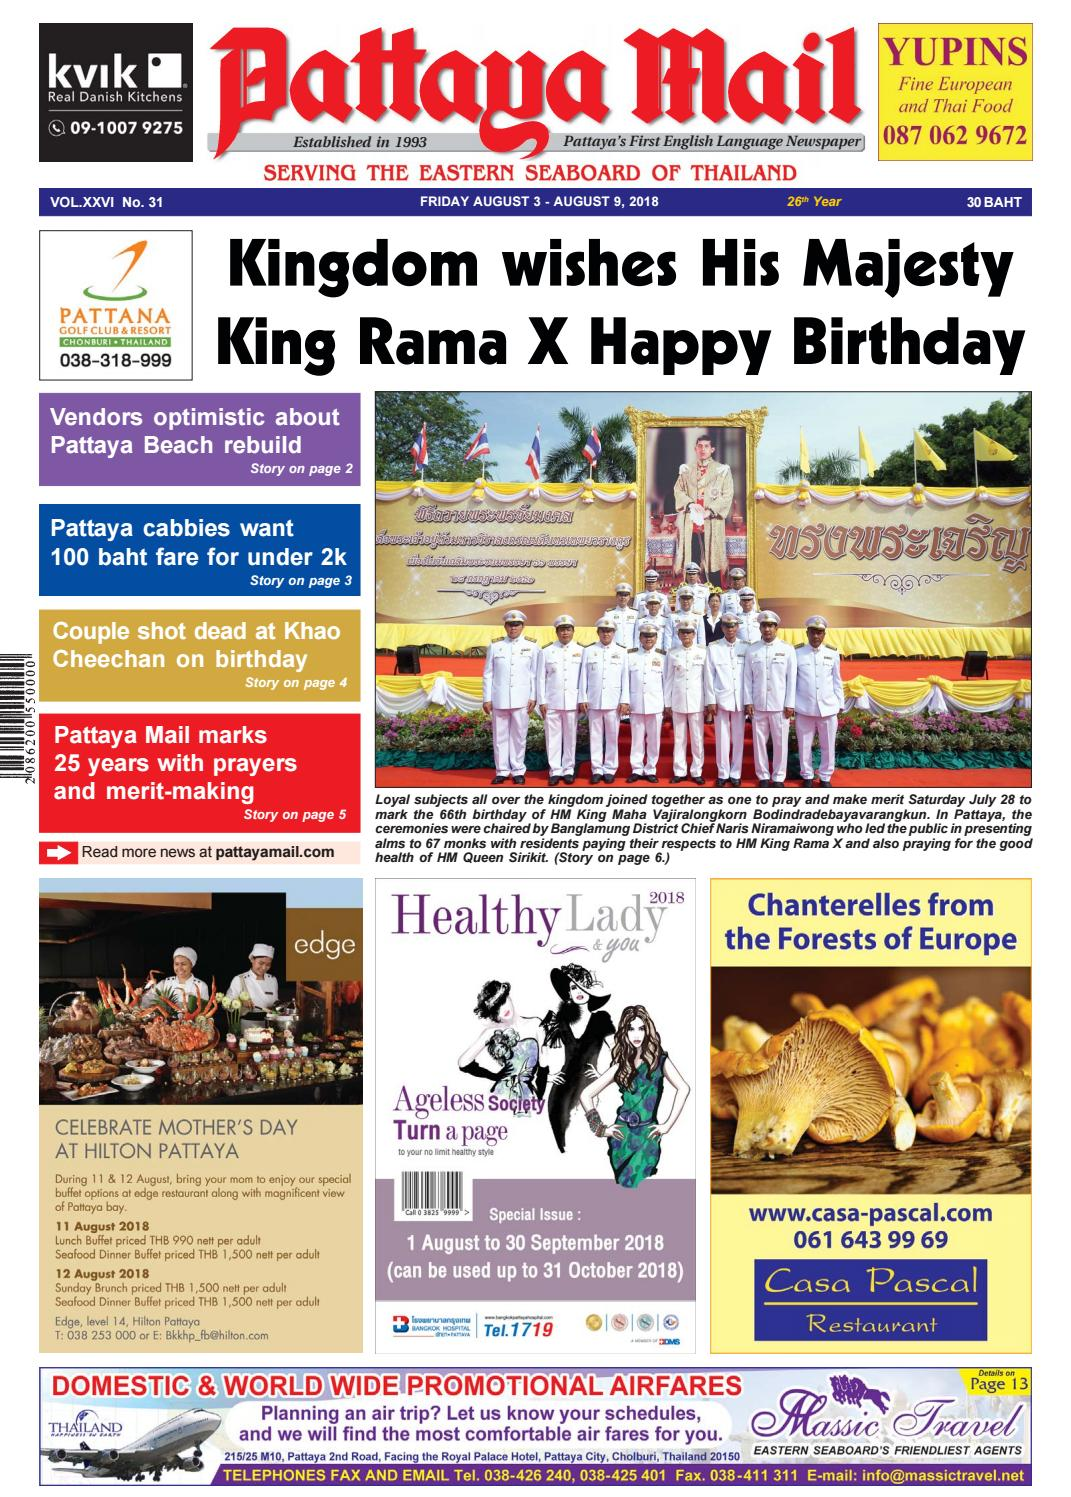 Pattaya Mail - FRIDAY AUGUST 3 - AUGUST 9, 2018 (Vol  XXVI No  31